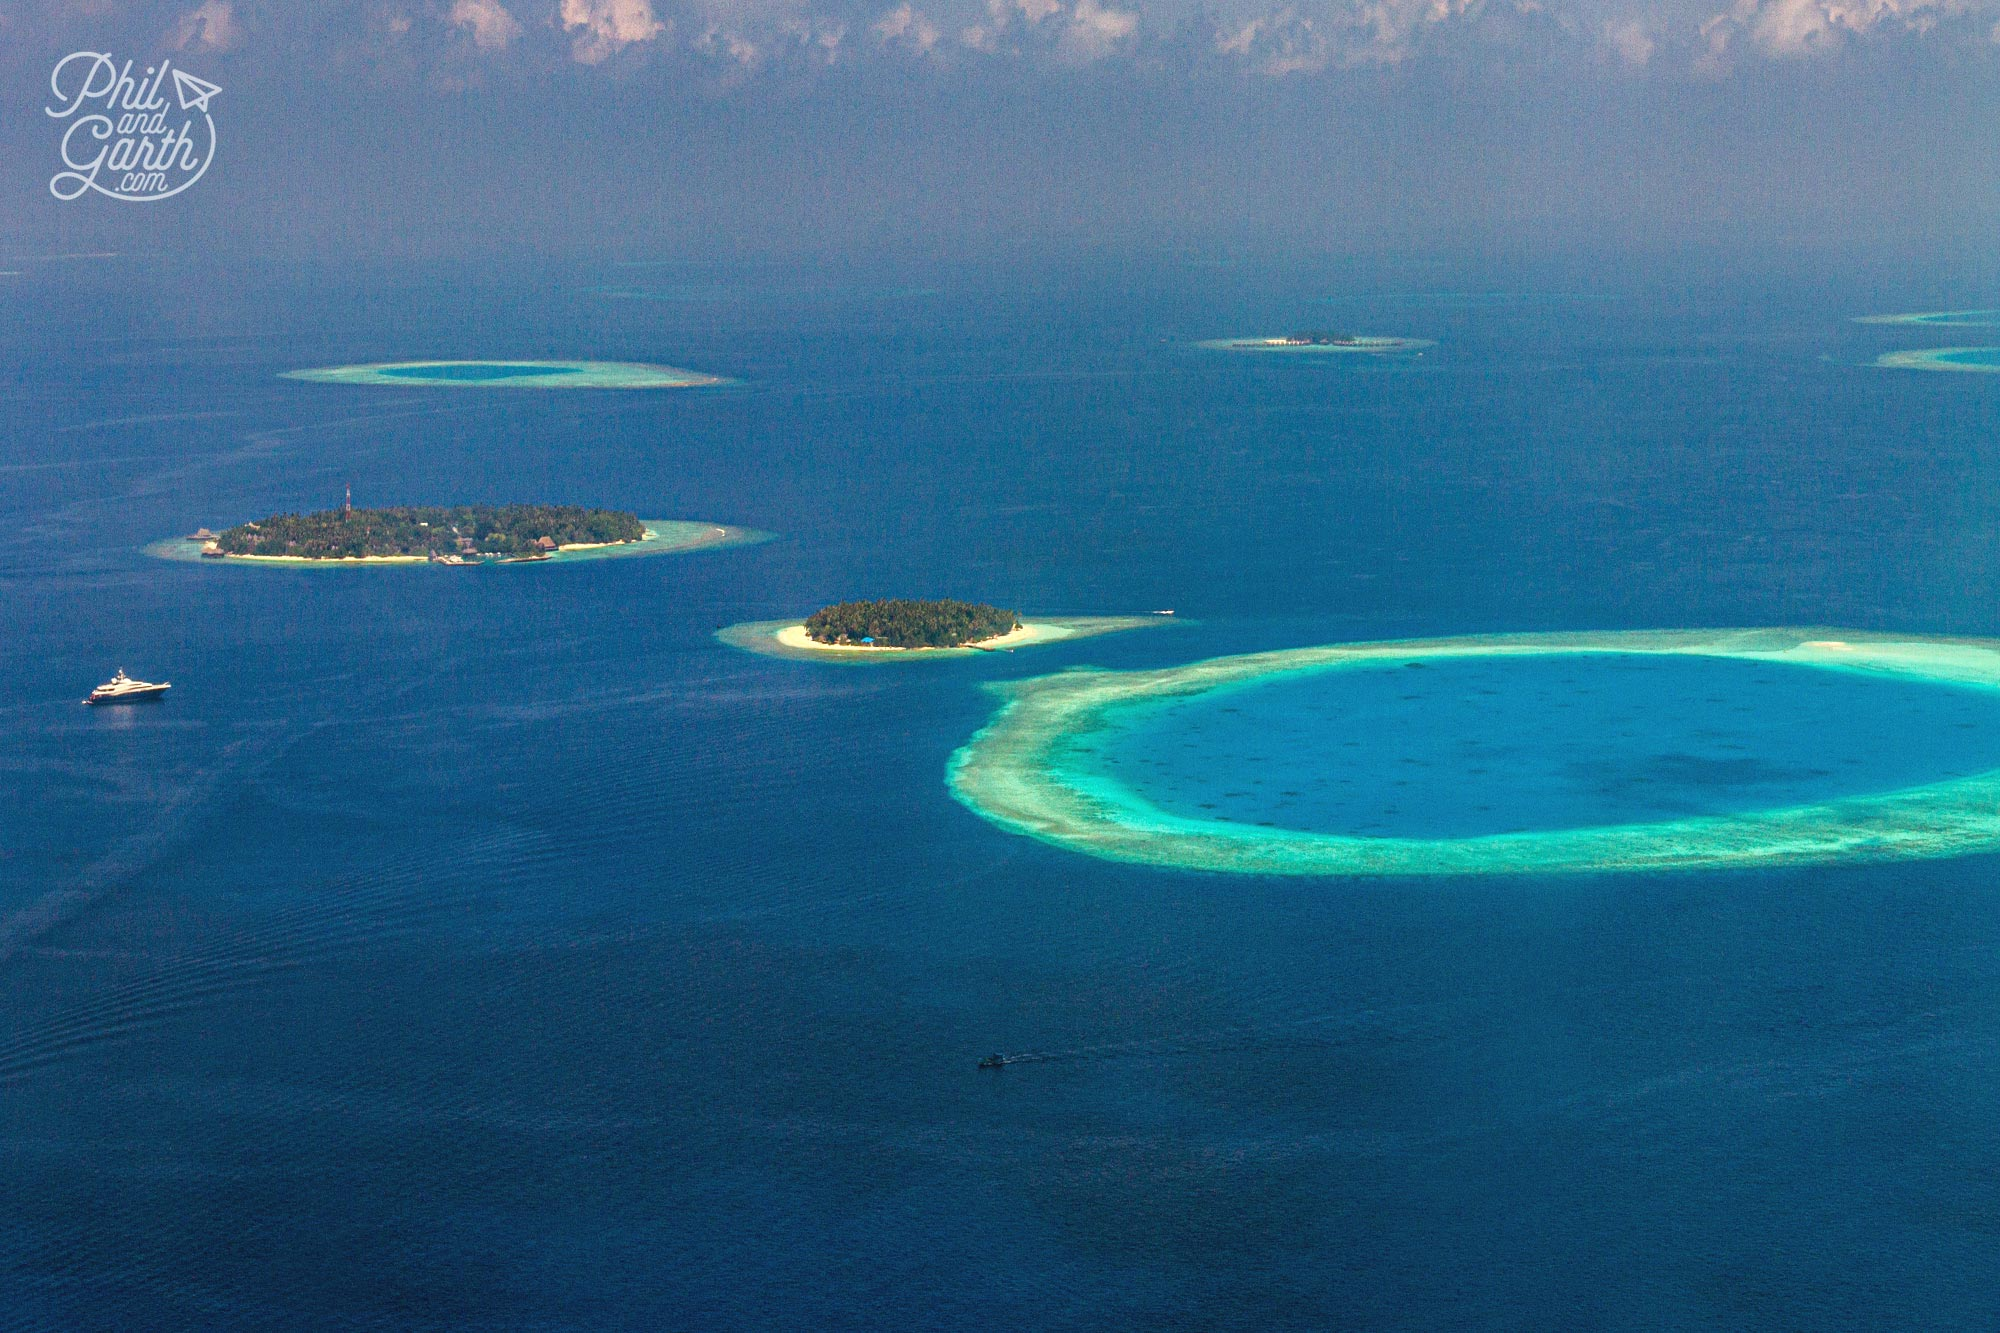 You can see just how many atolls there are from the air